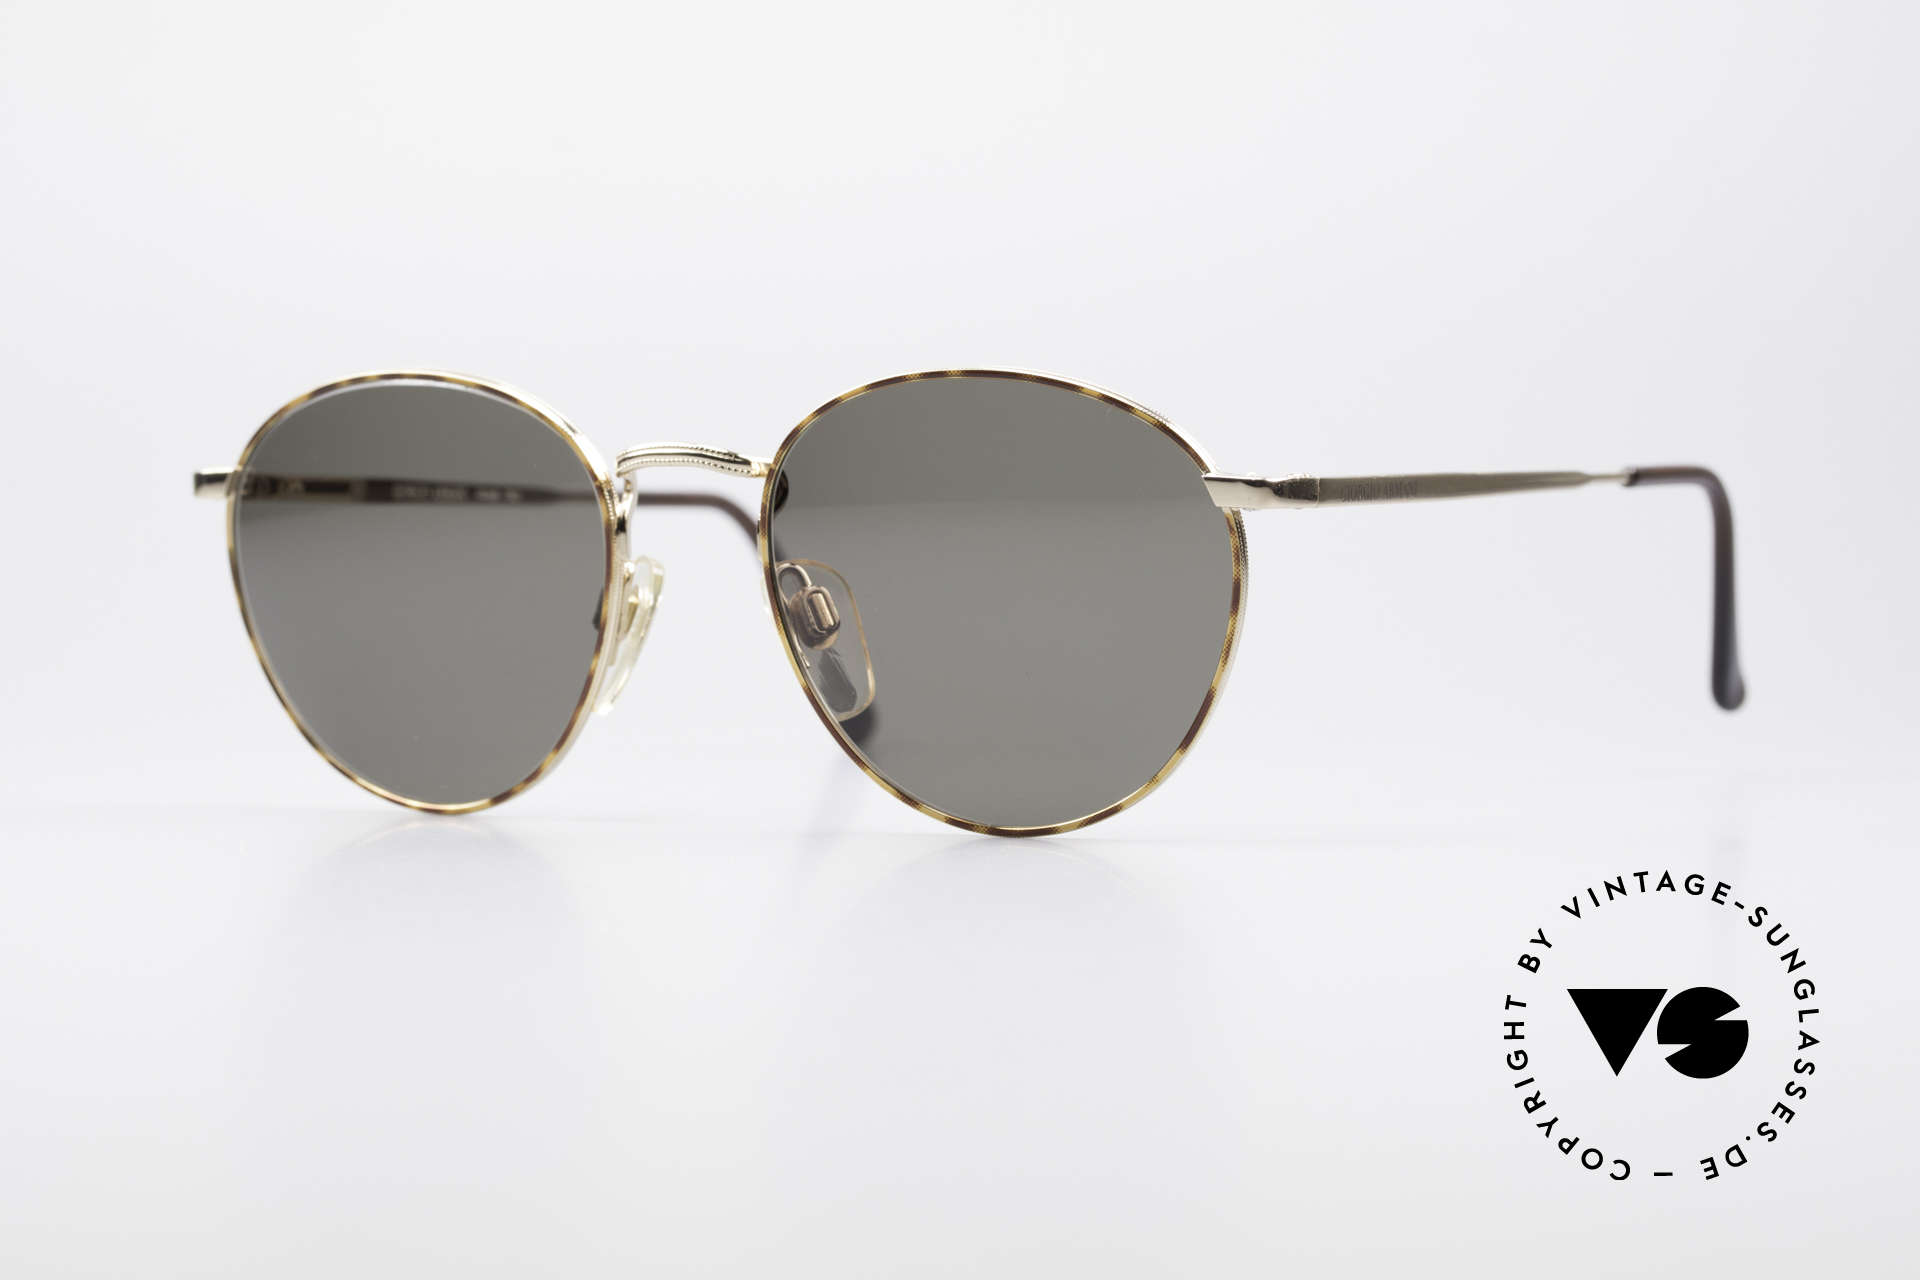 Giorgio Armani 166 Panto Sunglasses Gentlemen, timeless vintage GIORGIO Armani designer eyeglasses, Made for Men